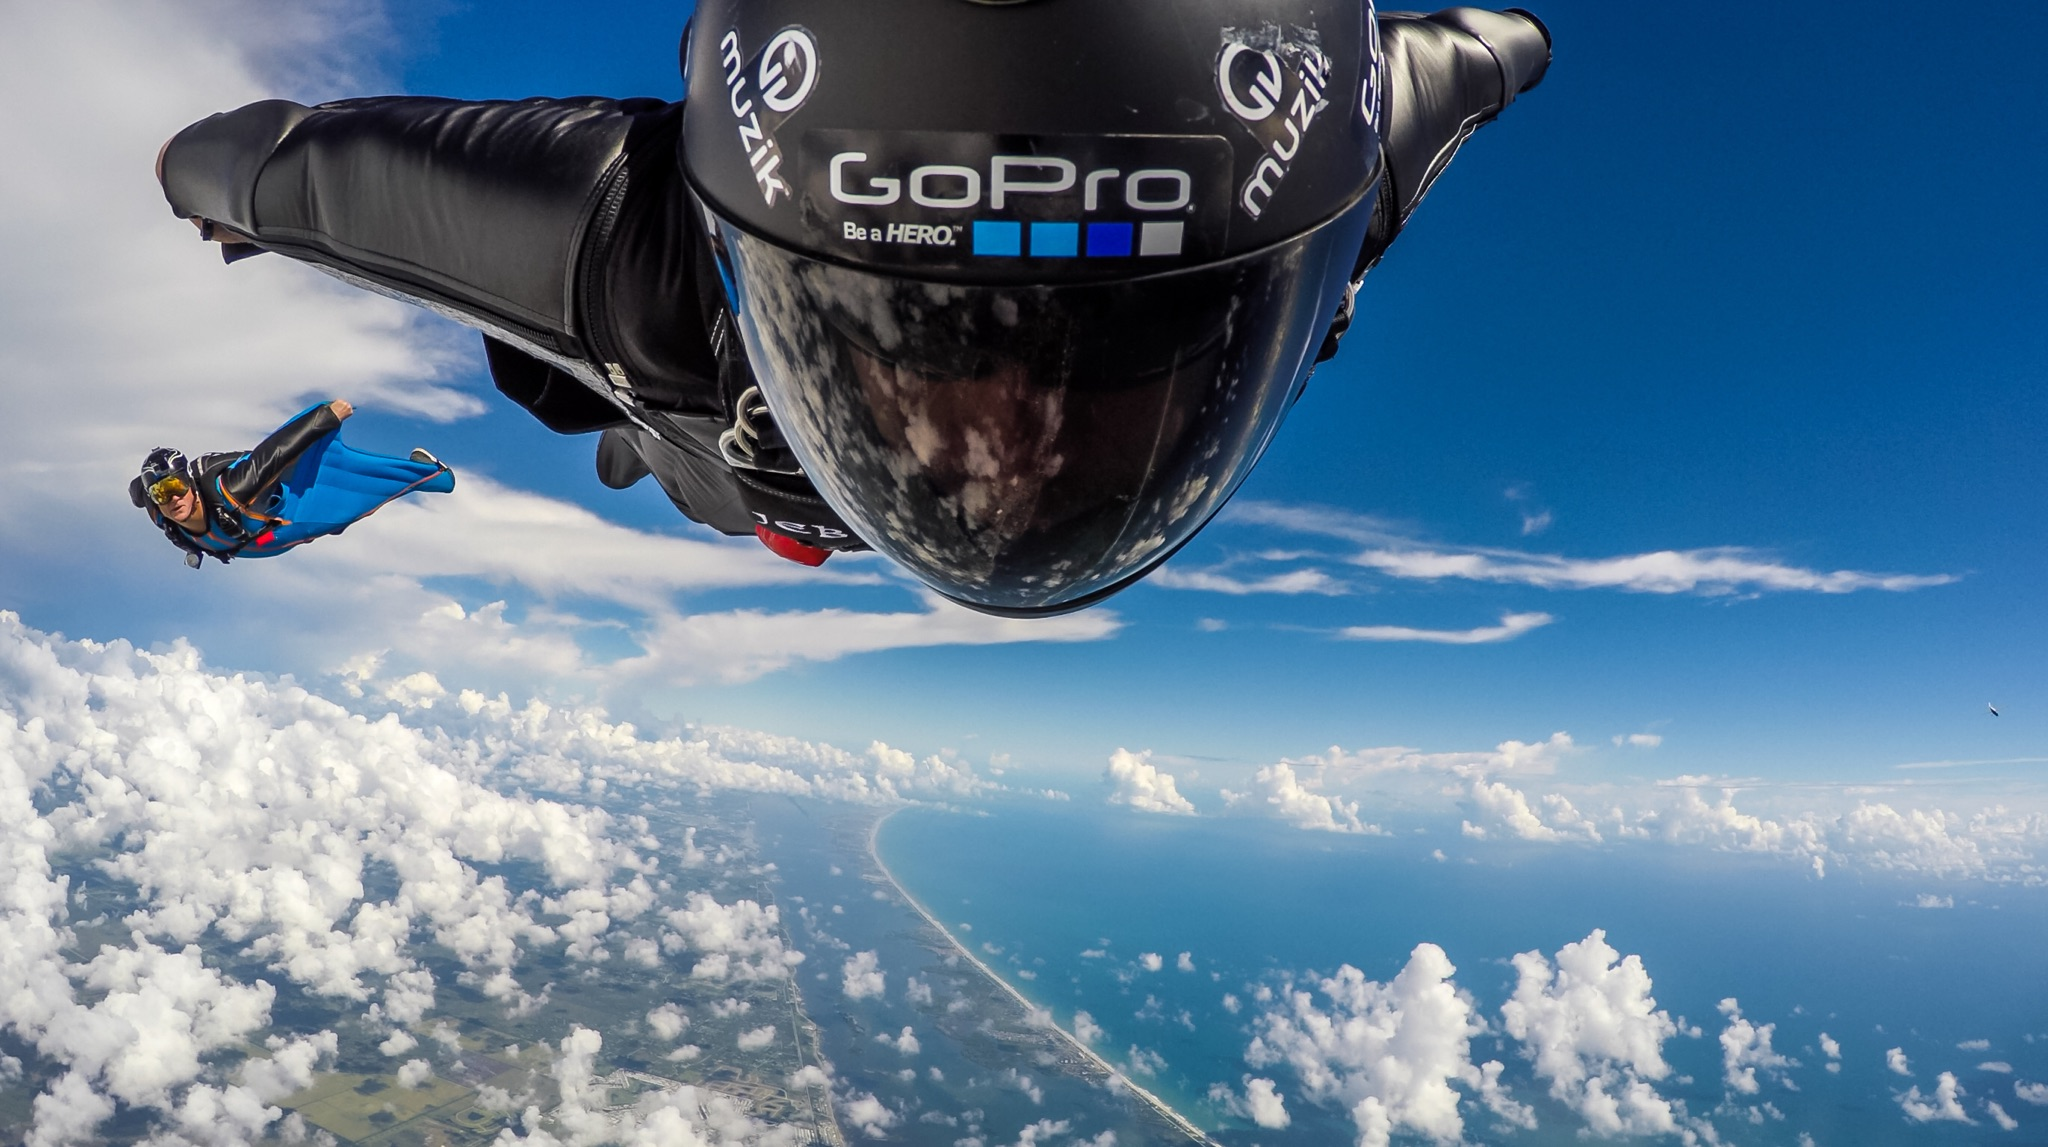 SuitflyGopro2.jpg